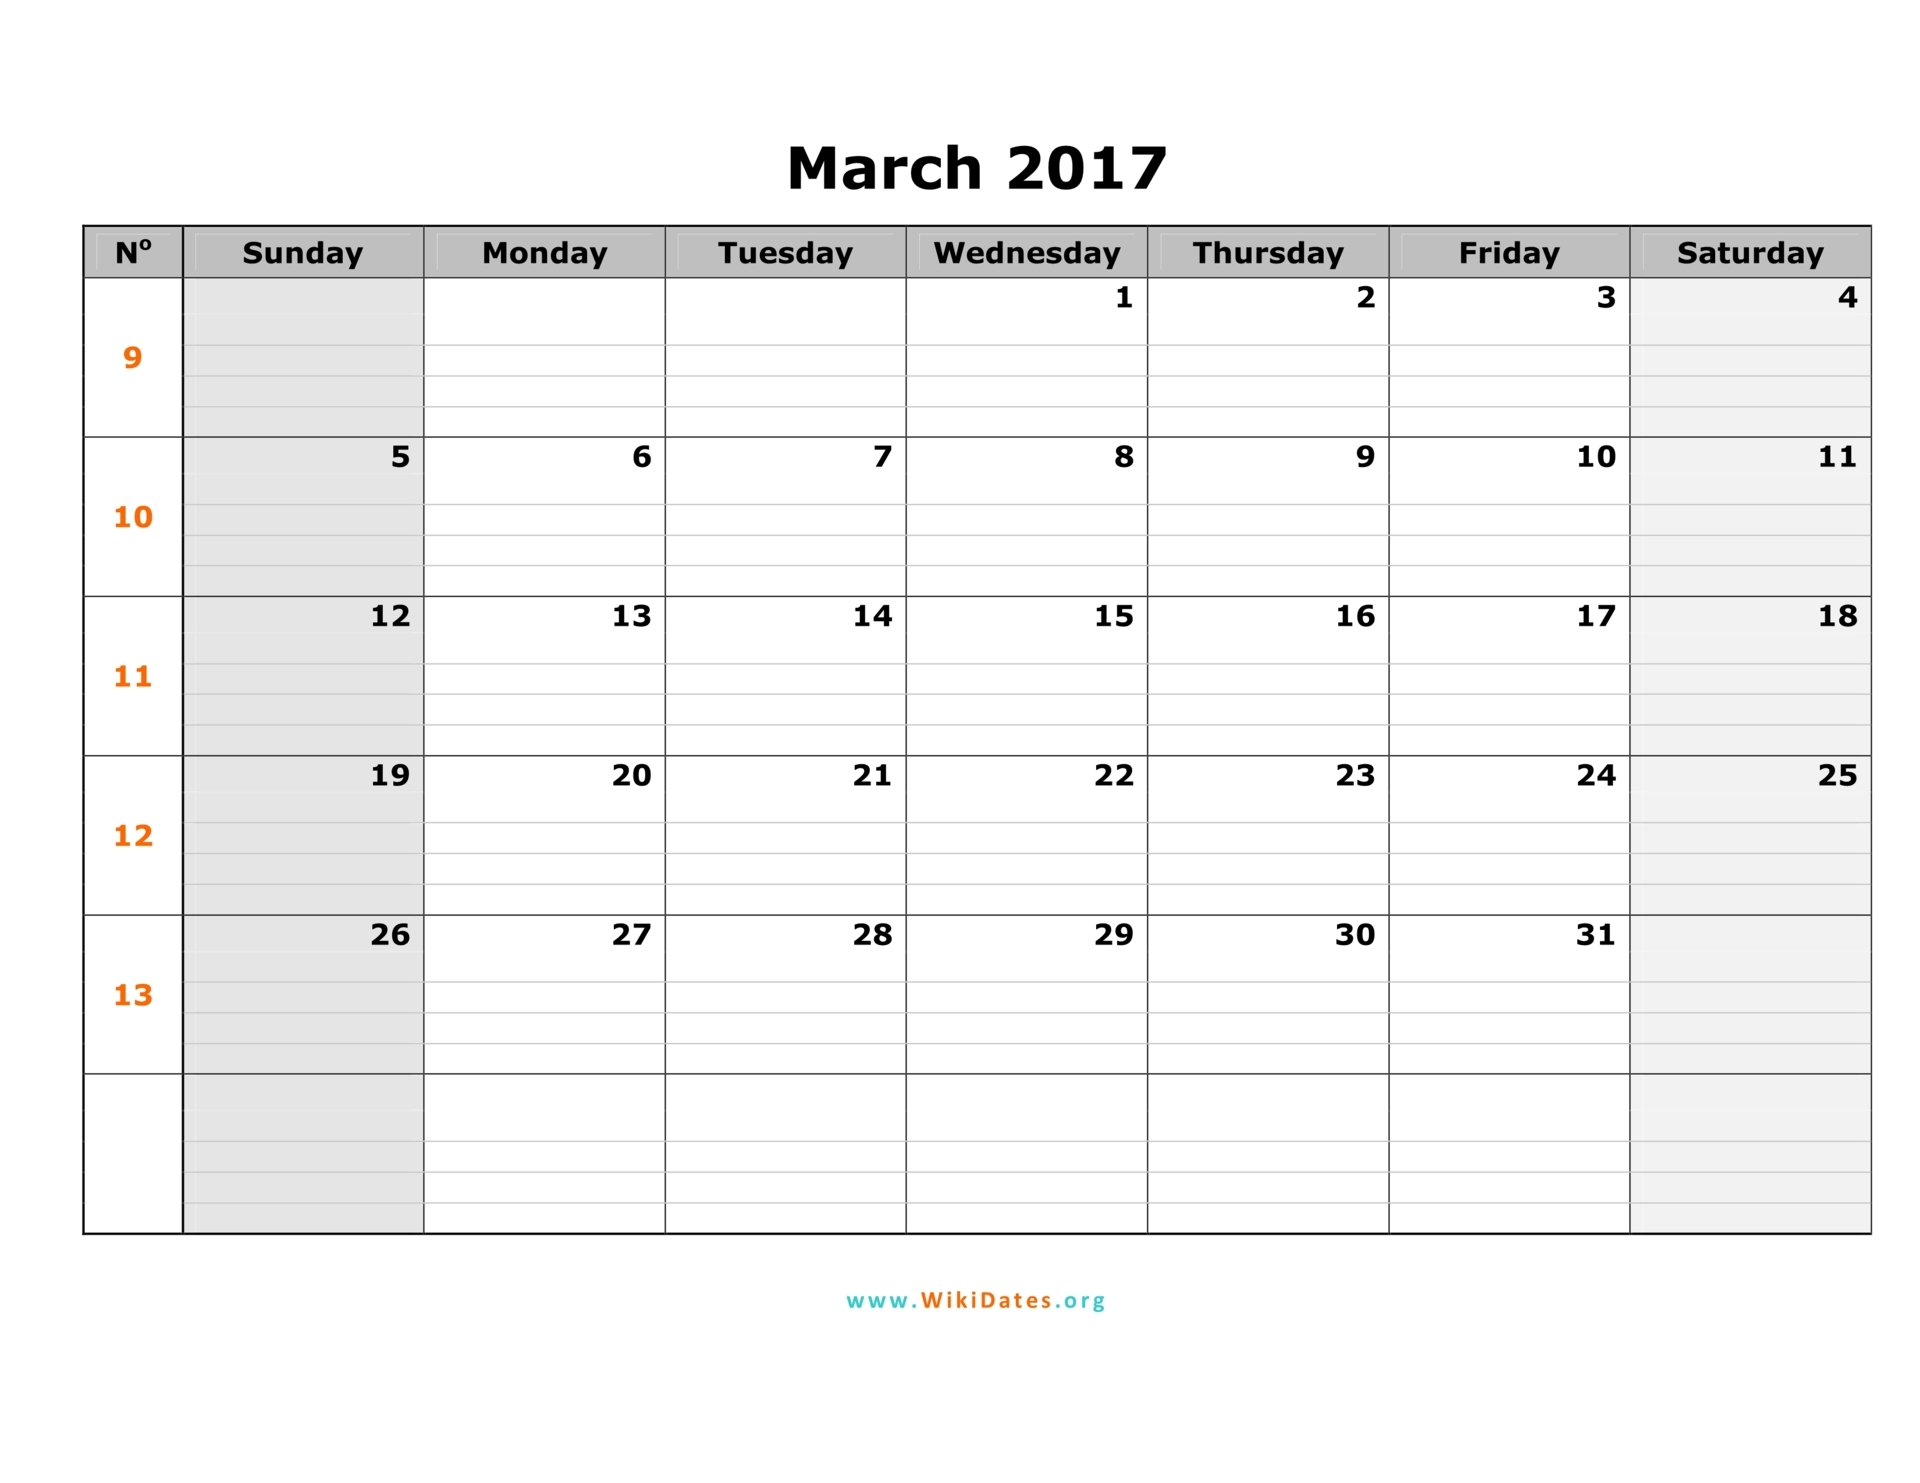 March 2017 Calendar Sunday 01